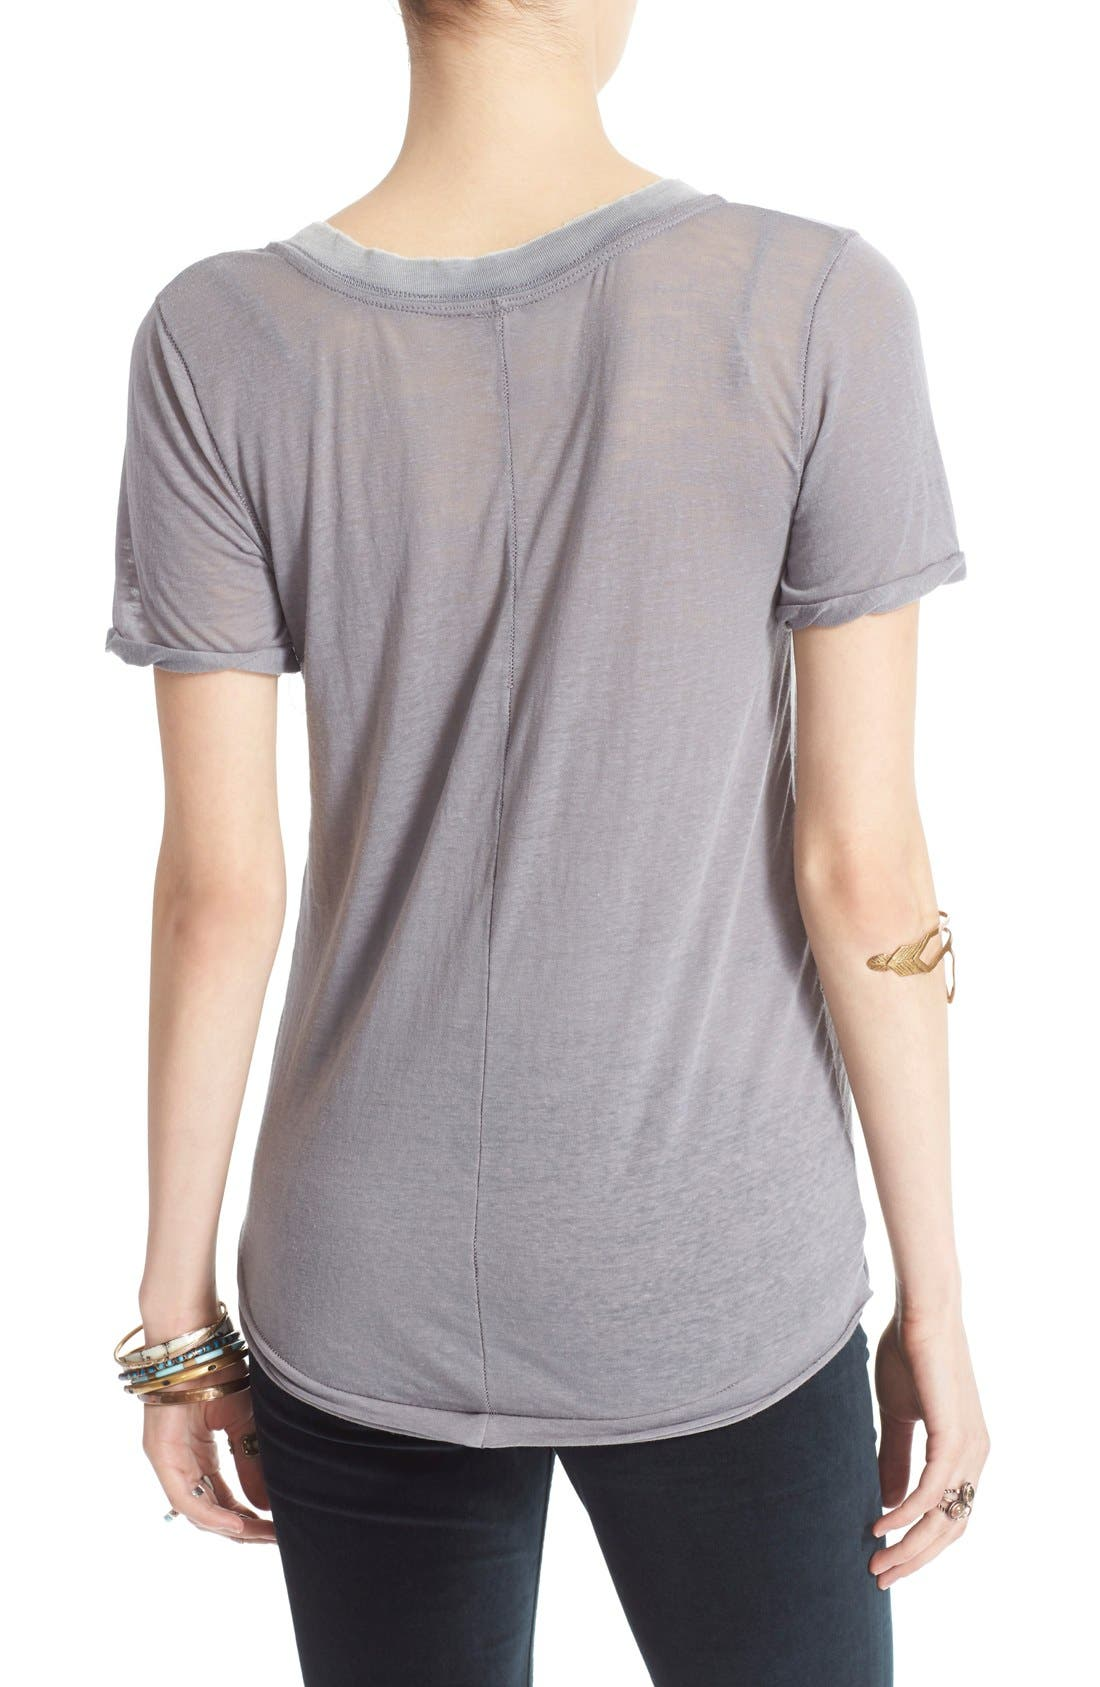 FREE PEOPLE, 'Pearls' Raw Edge V-Neck Tee, Alternate thumbnail 3, color, 030